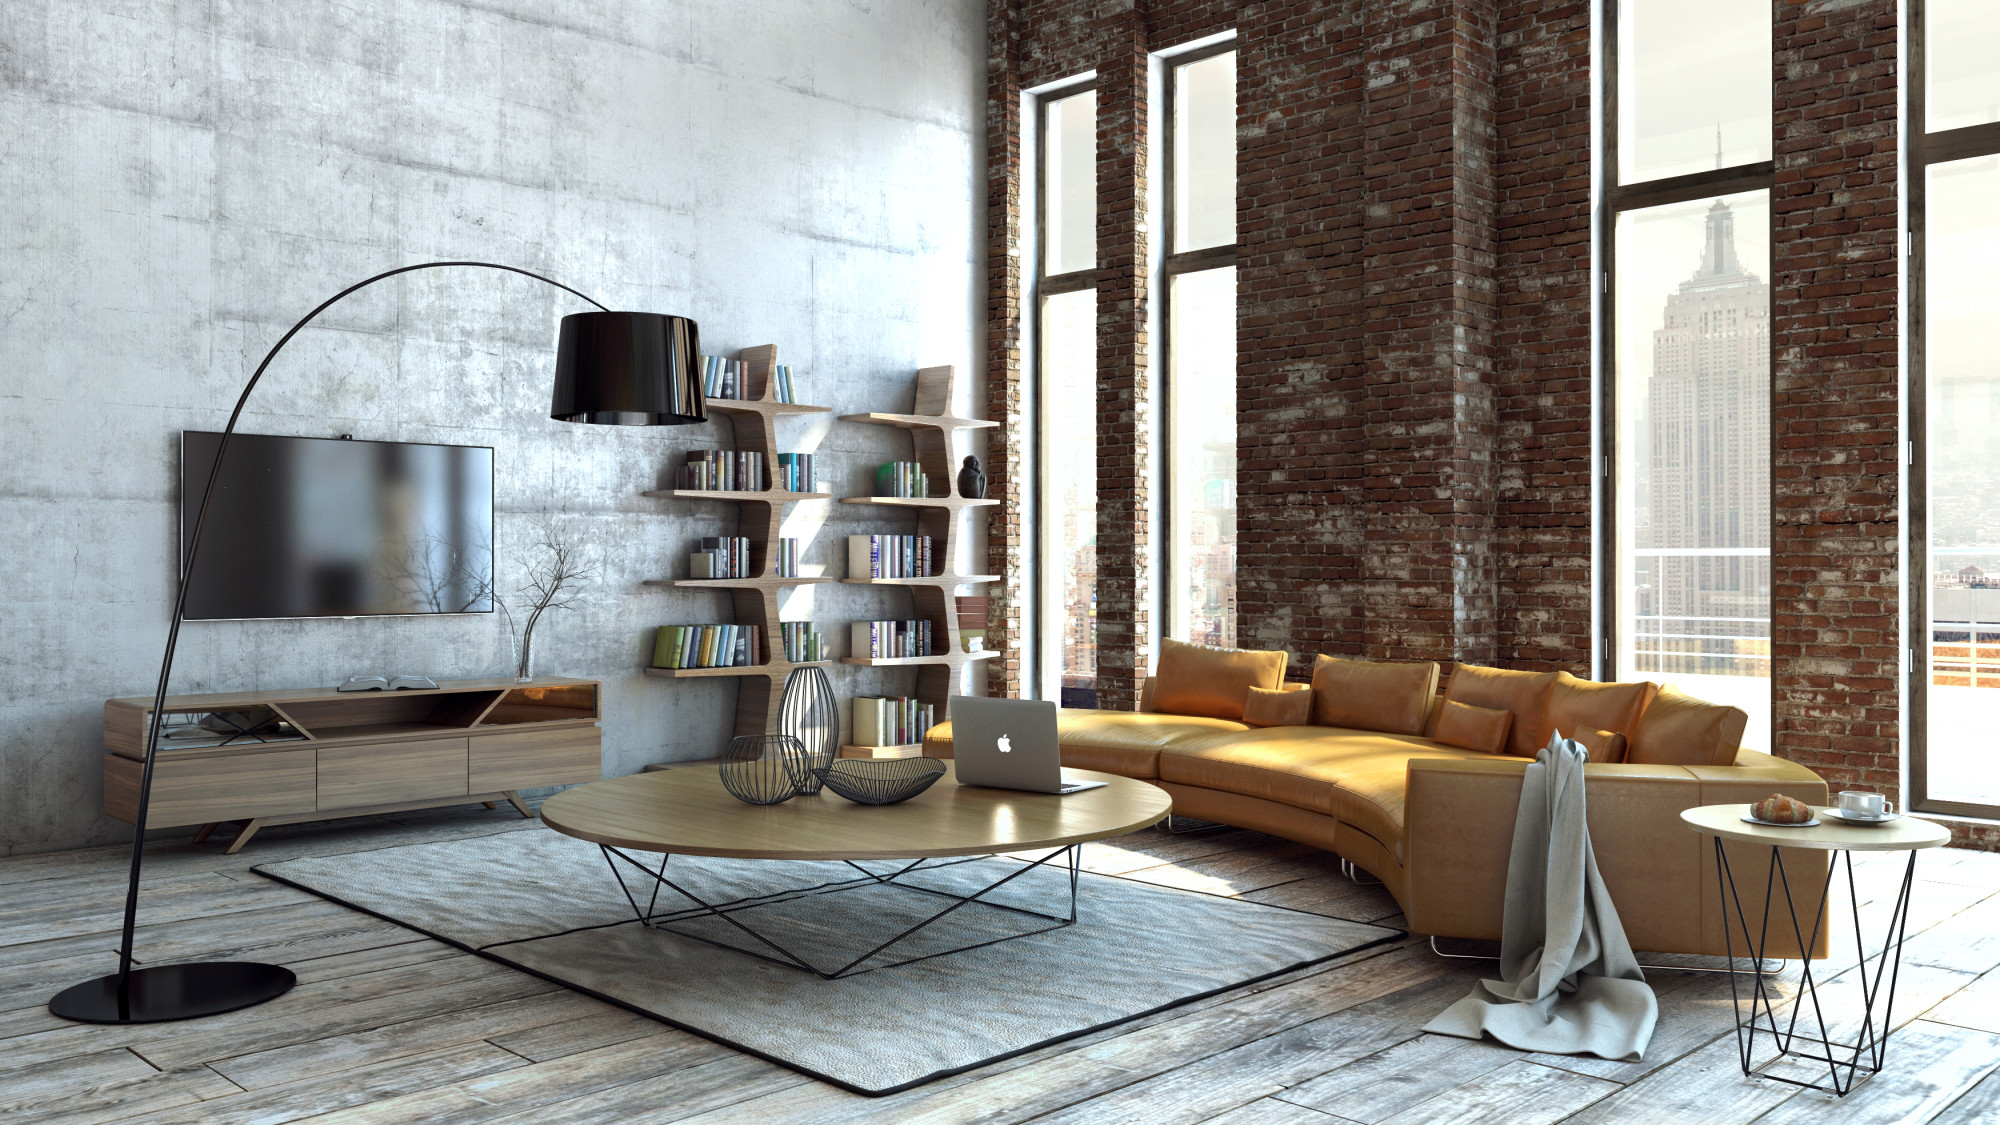 Great Idea to Arrange a Small Loft Apartment - InteriorZine